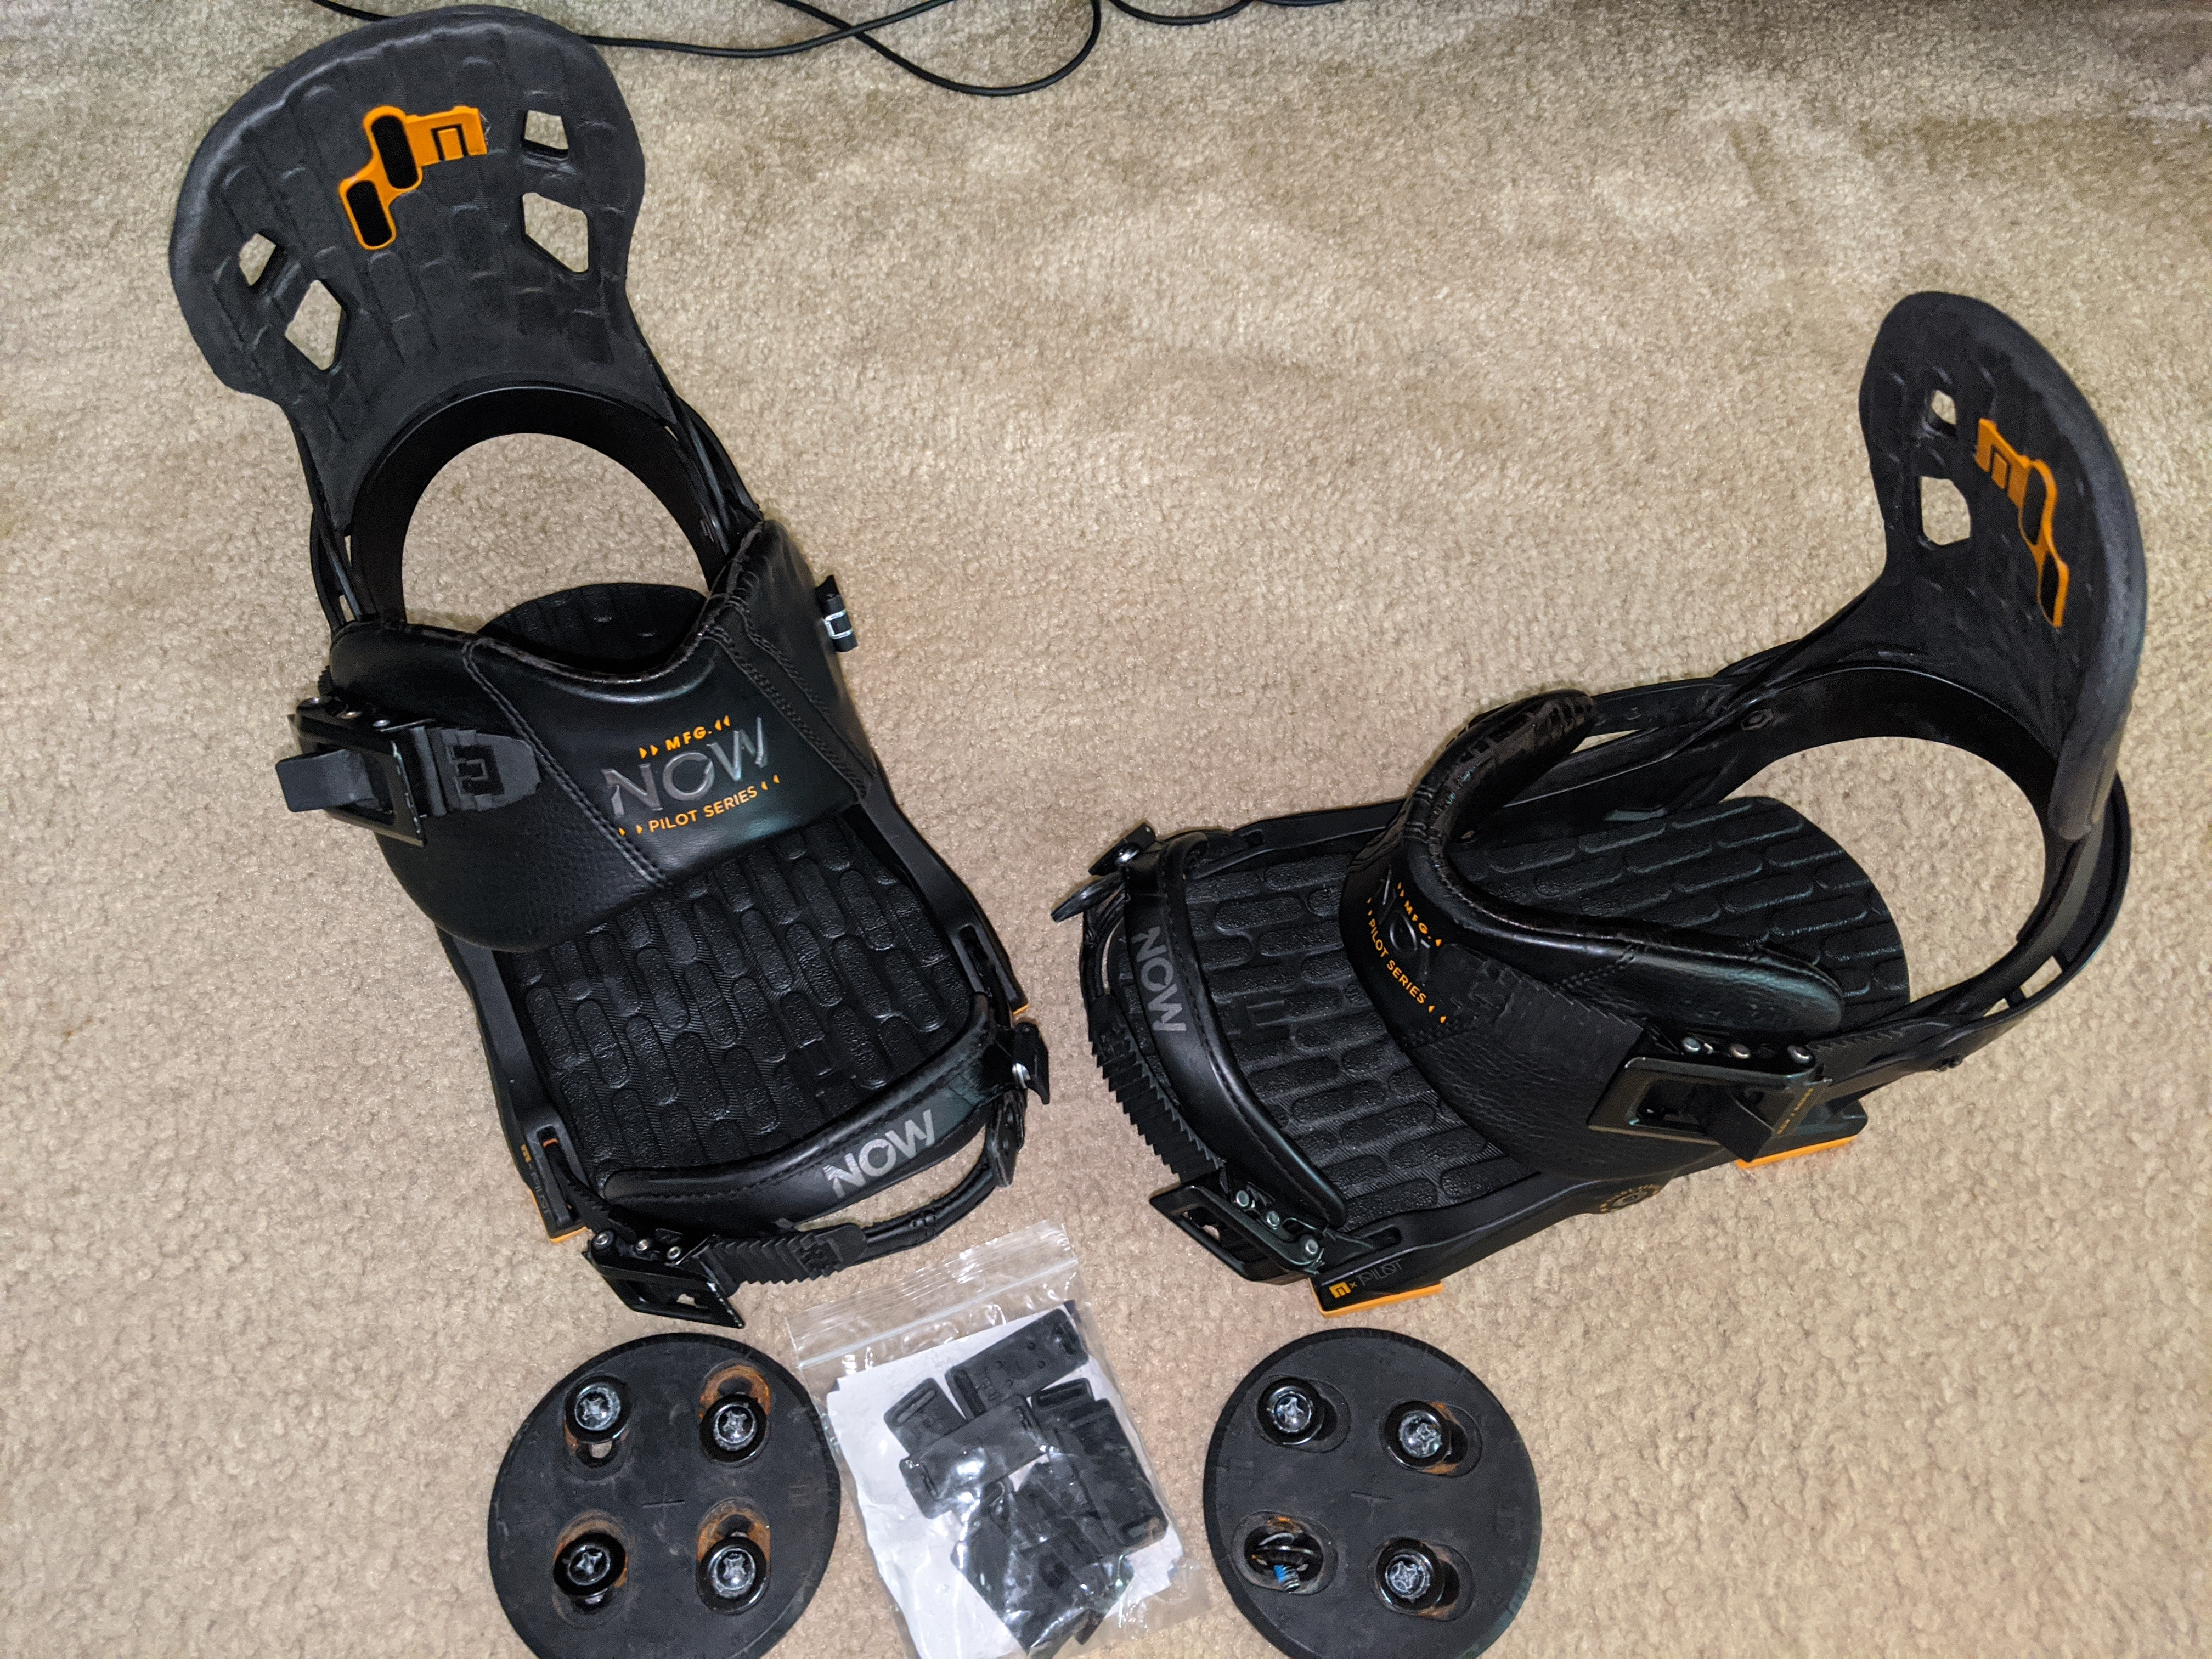 Now Pilot snowboard bindings - Size Large